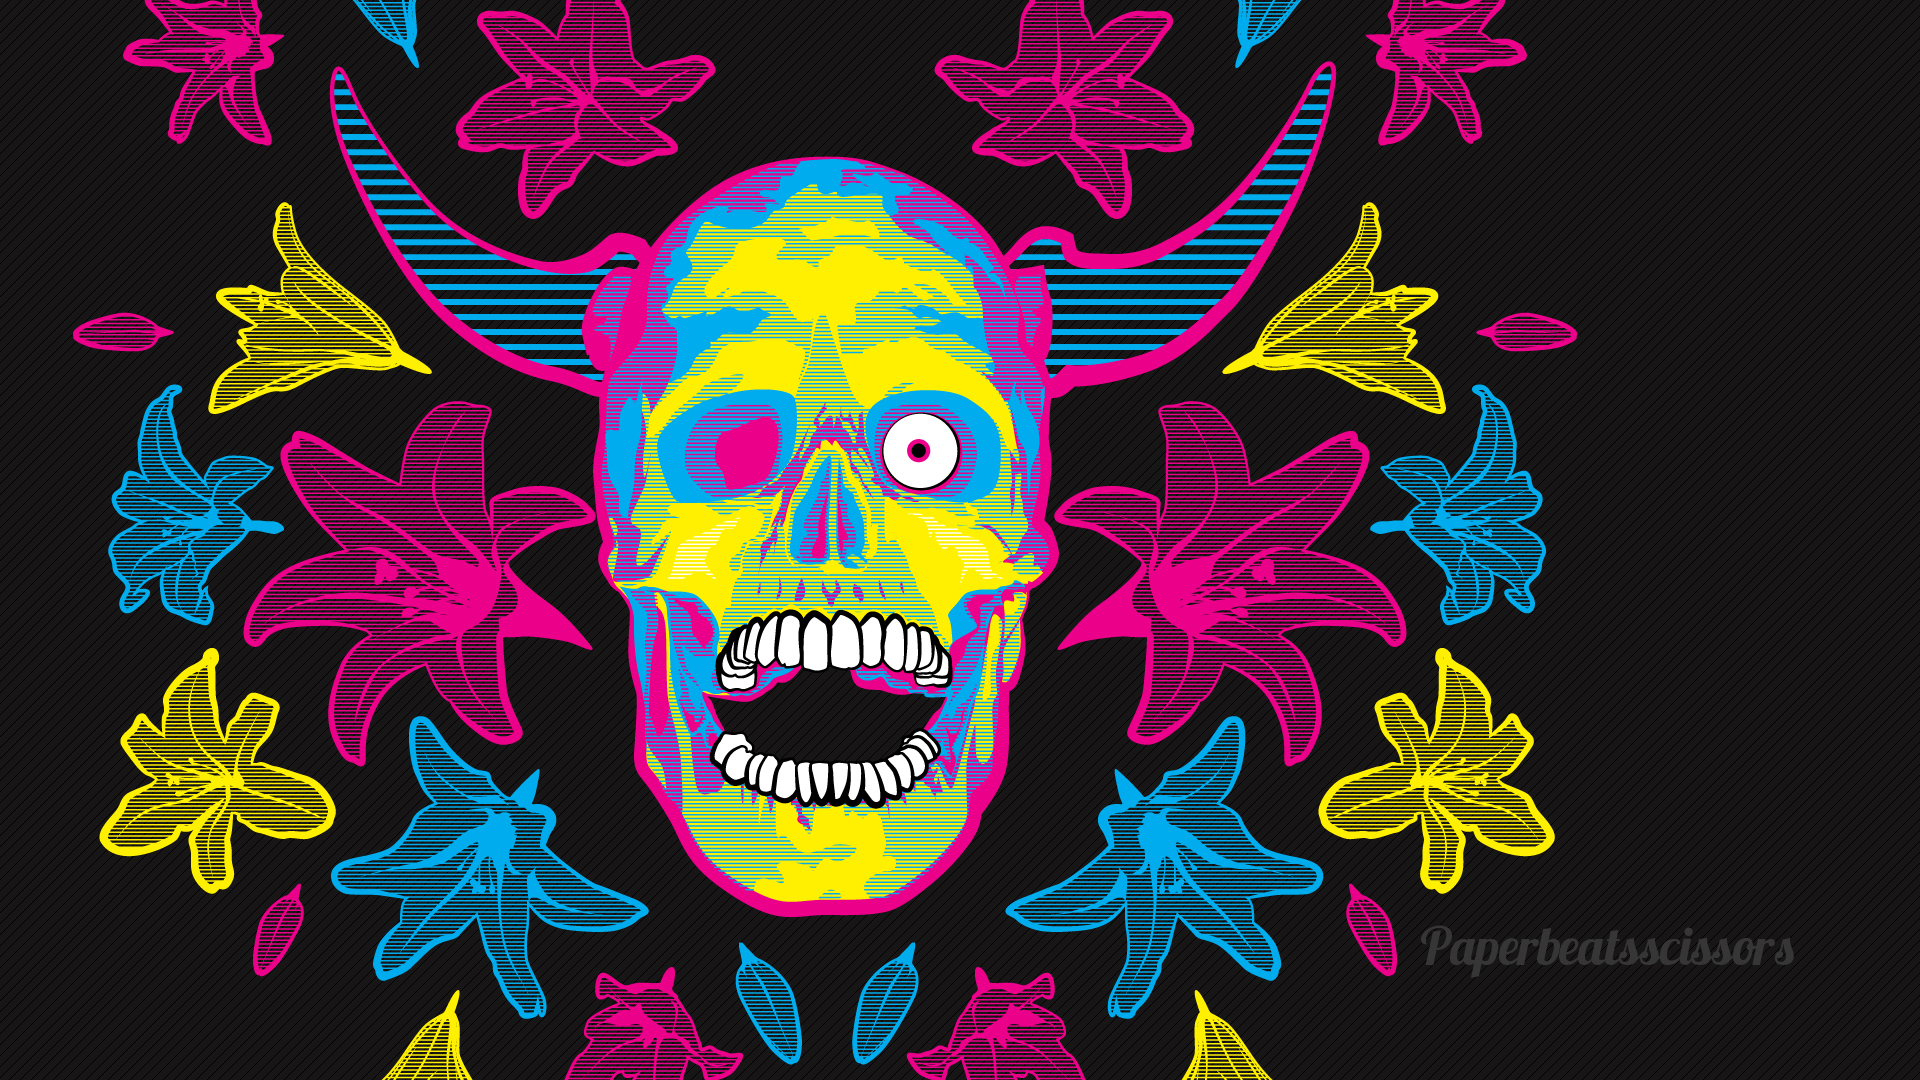 Psychedelic Hd Wallpaper Background Image 1920x1080